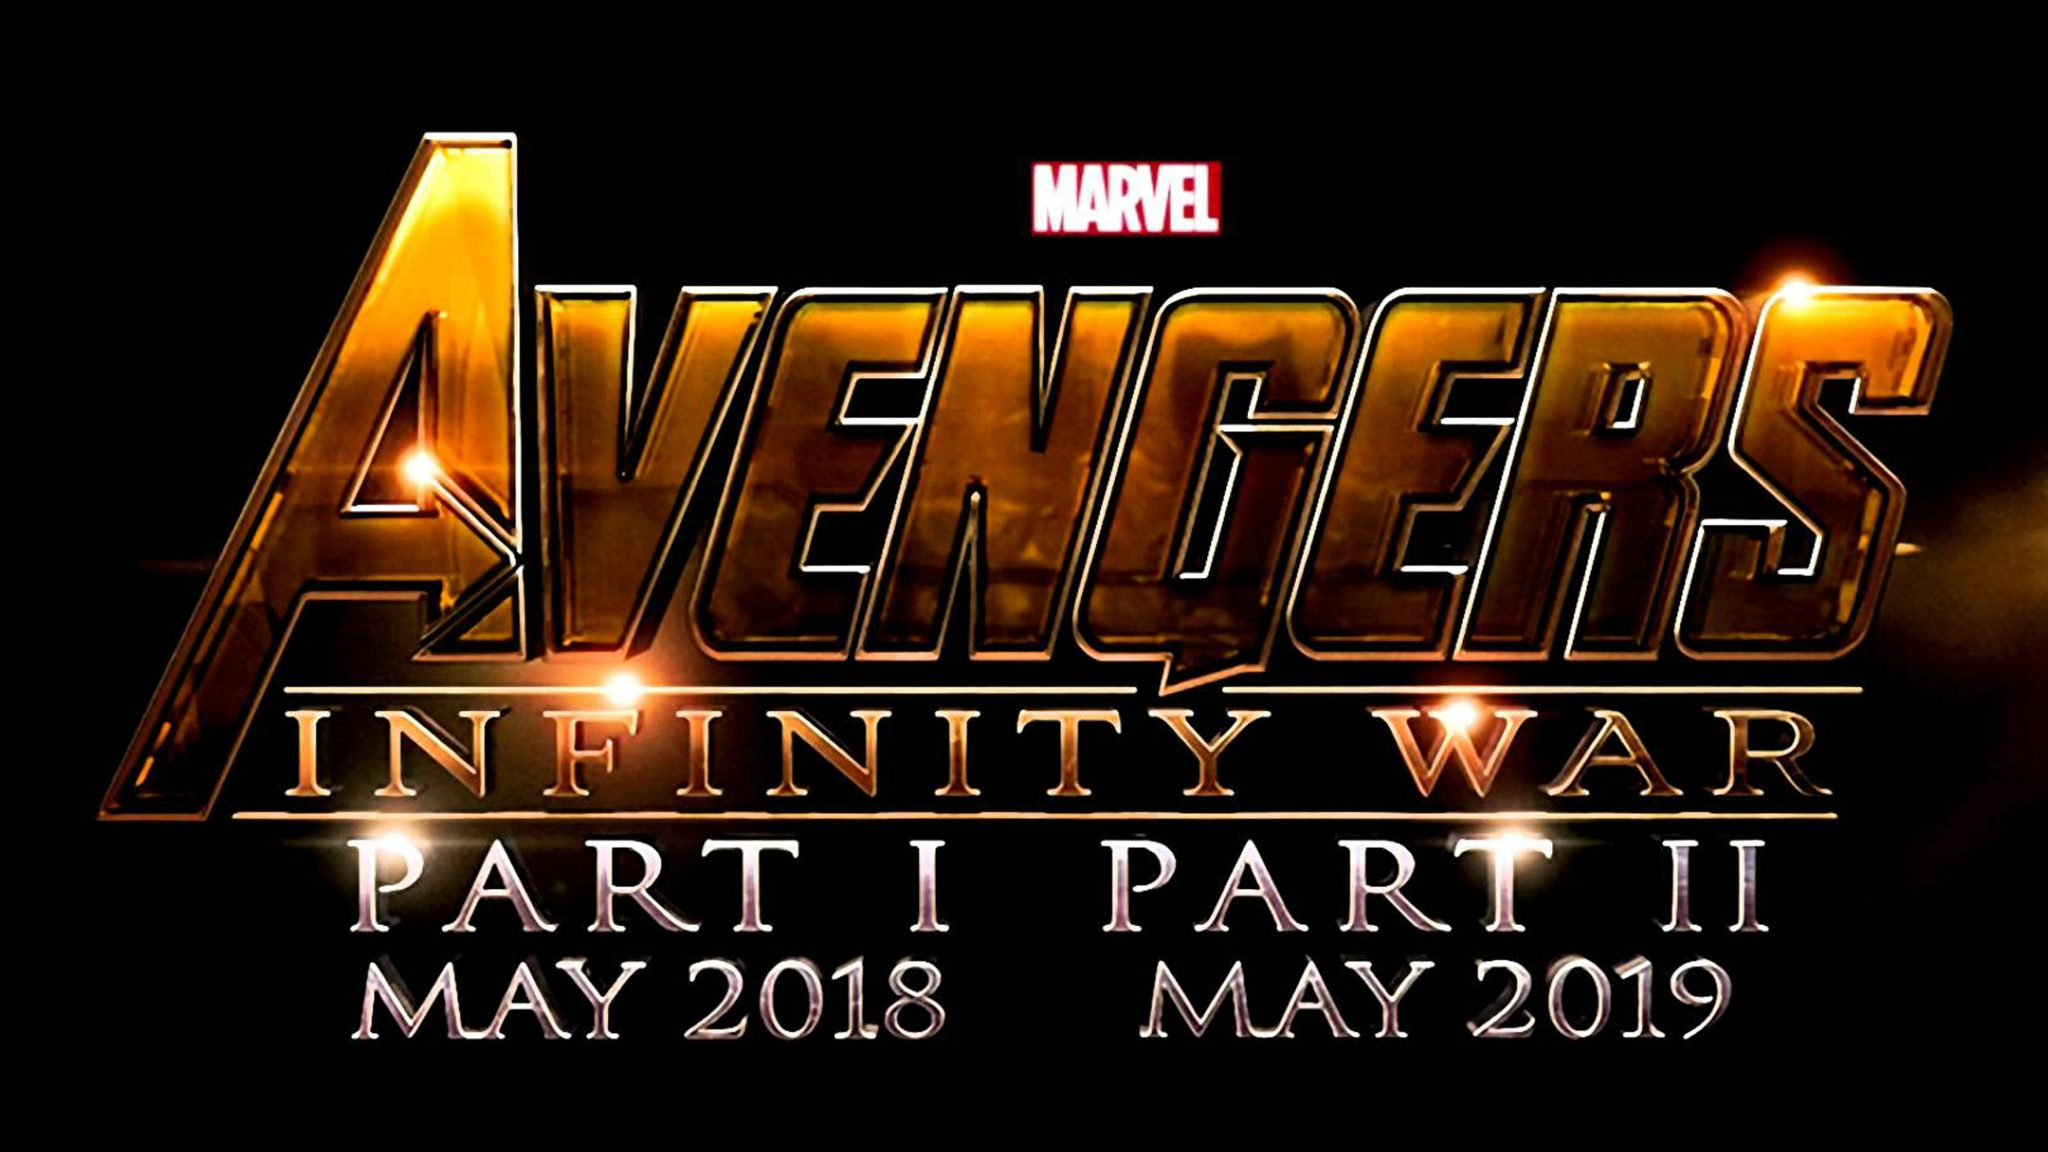 Avengers- Infinity War movie will be retitled